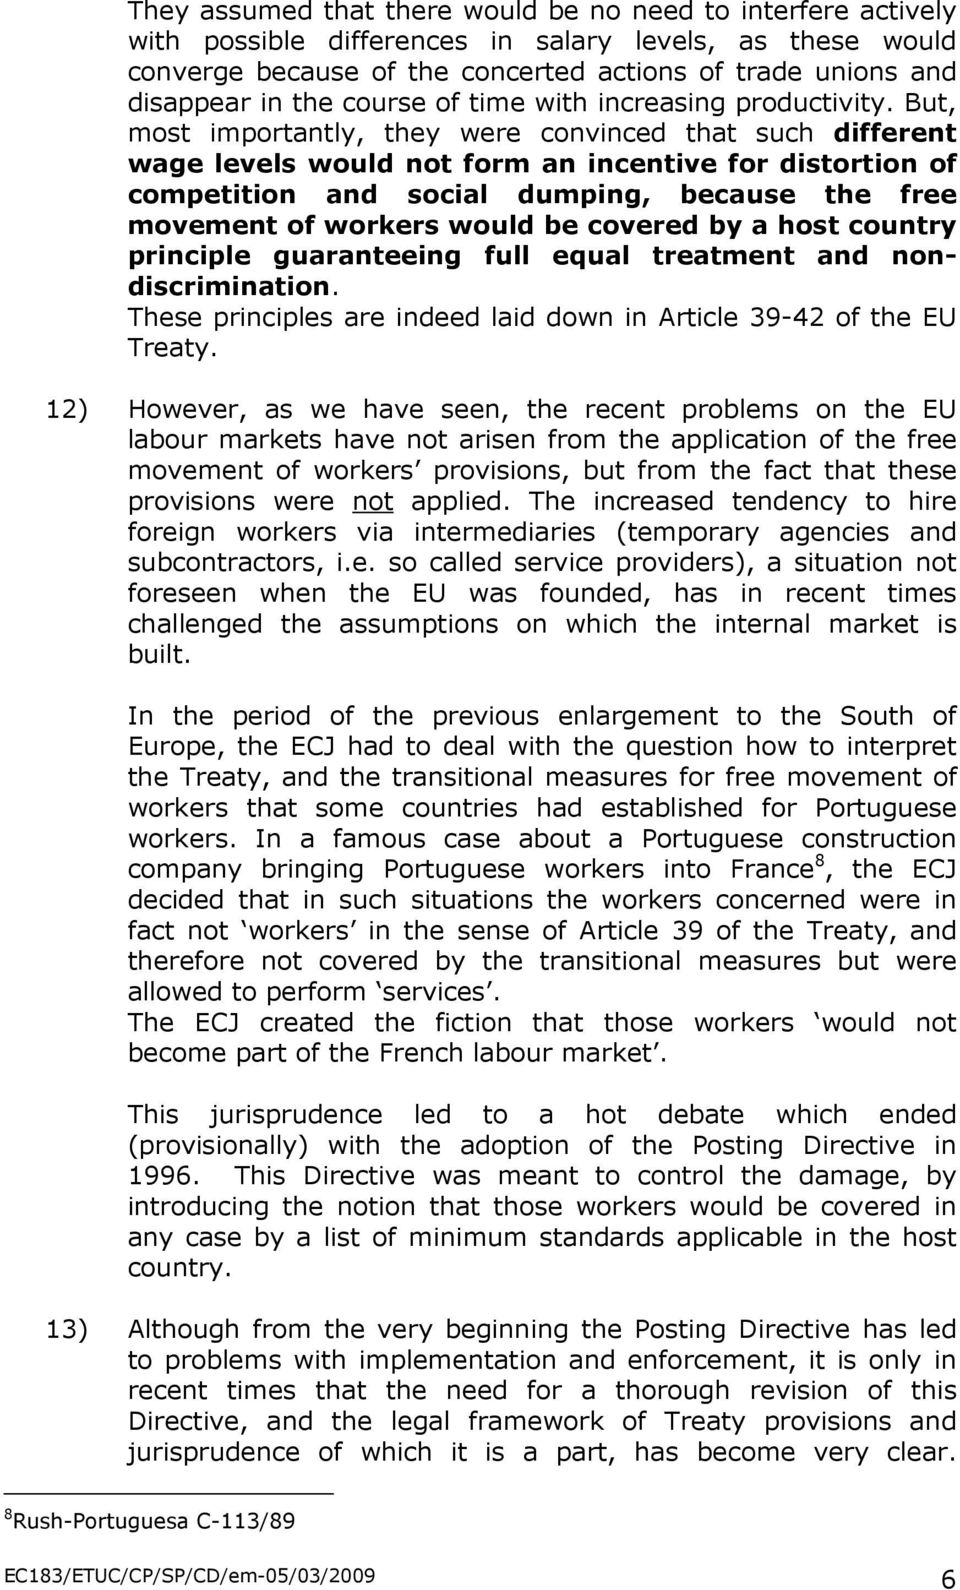 But, most importantly, they were convinced that such different wage levels would not form an incentive for distortion of competition and social dumping, because the free movement of workers would be